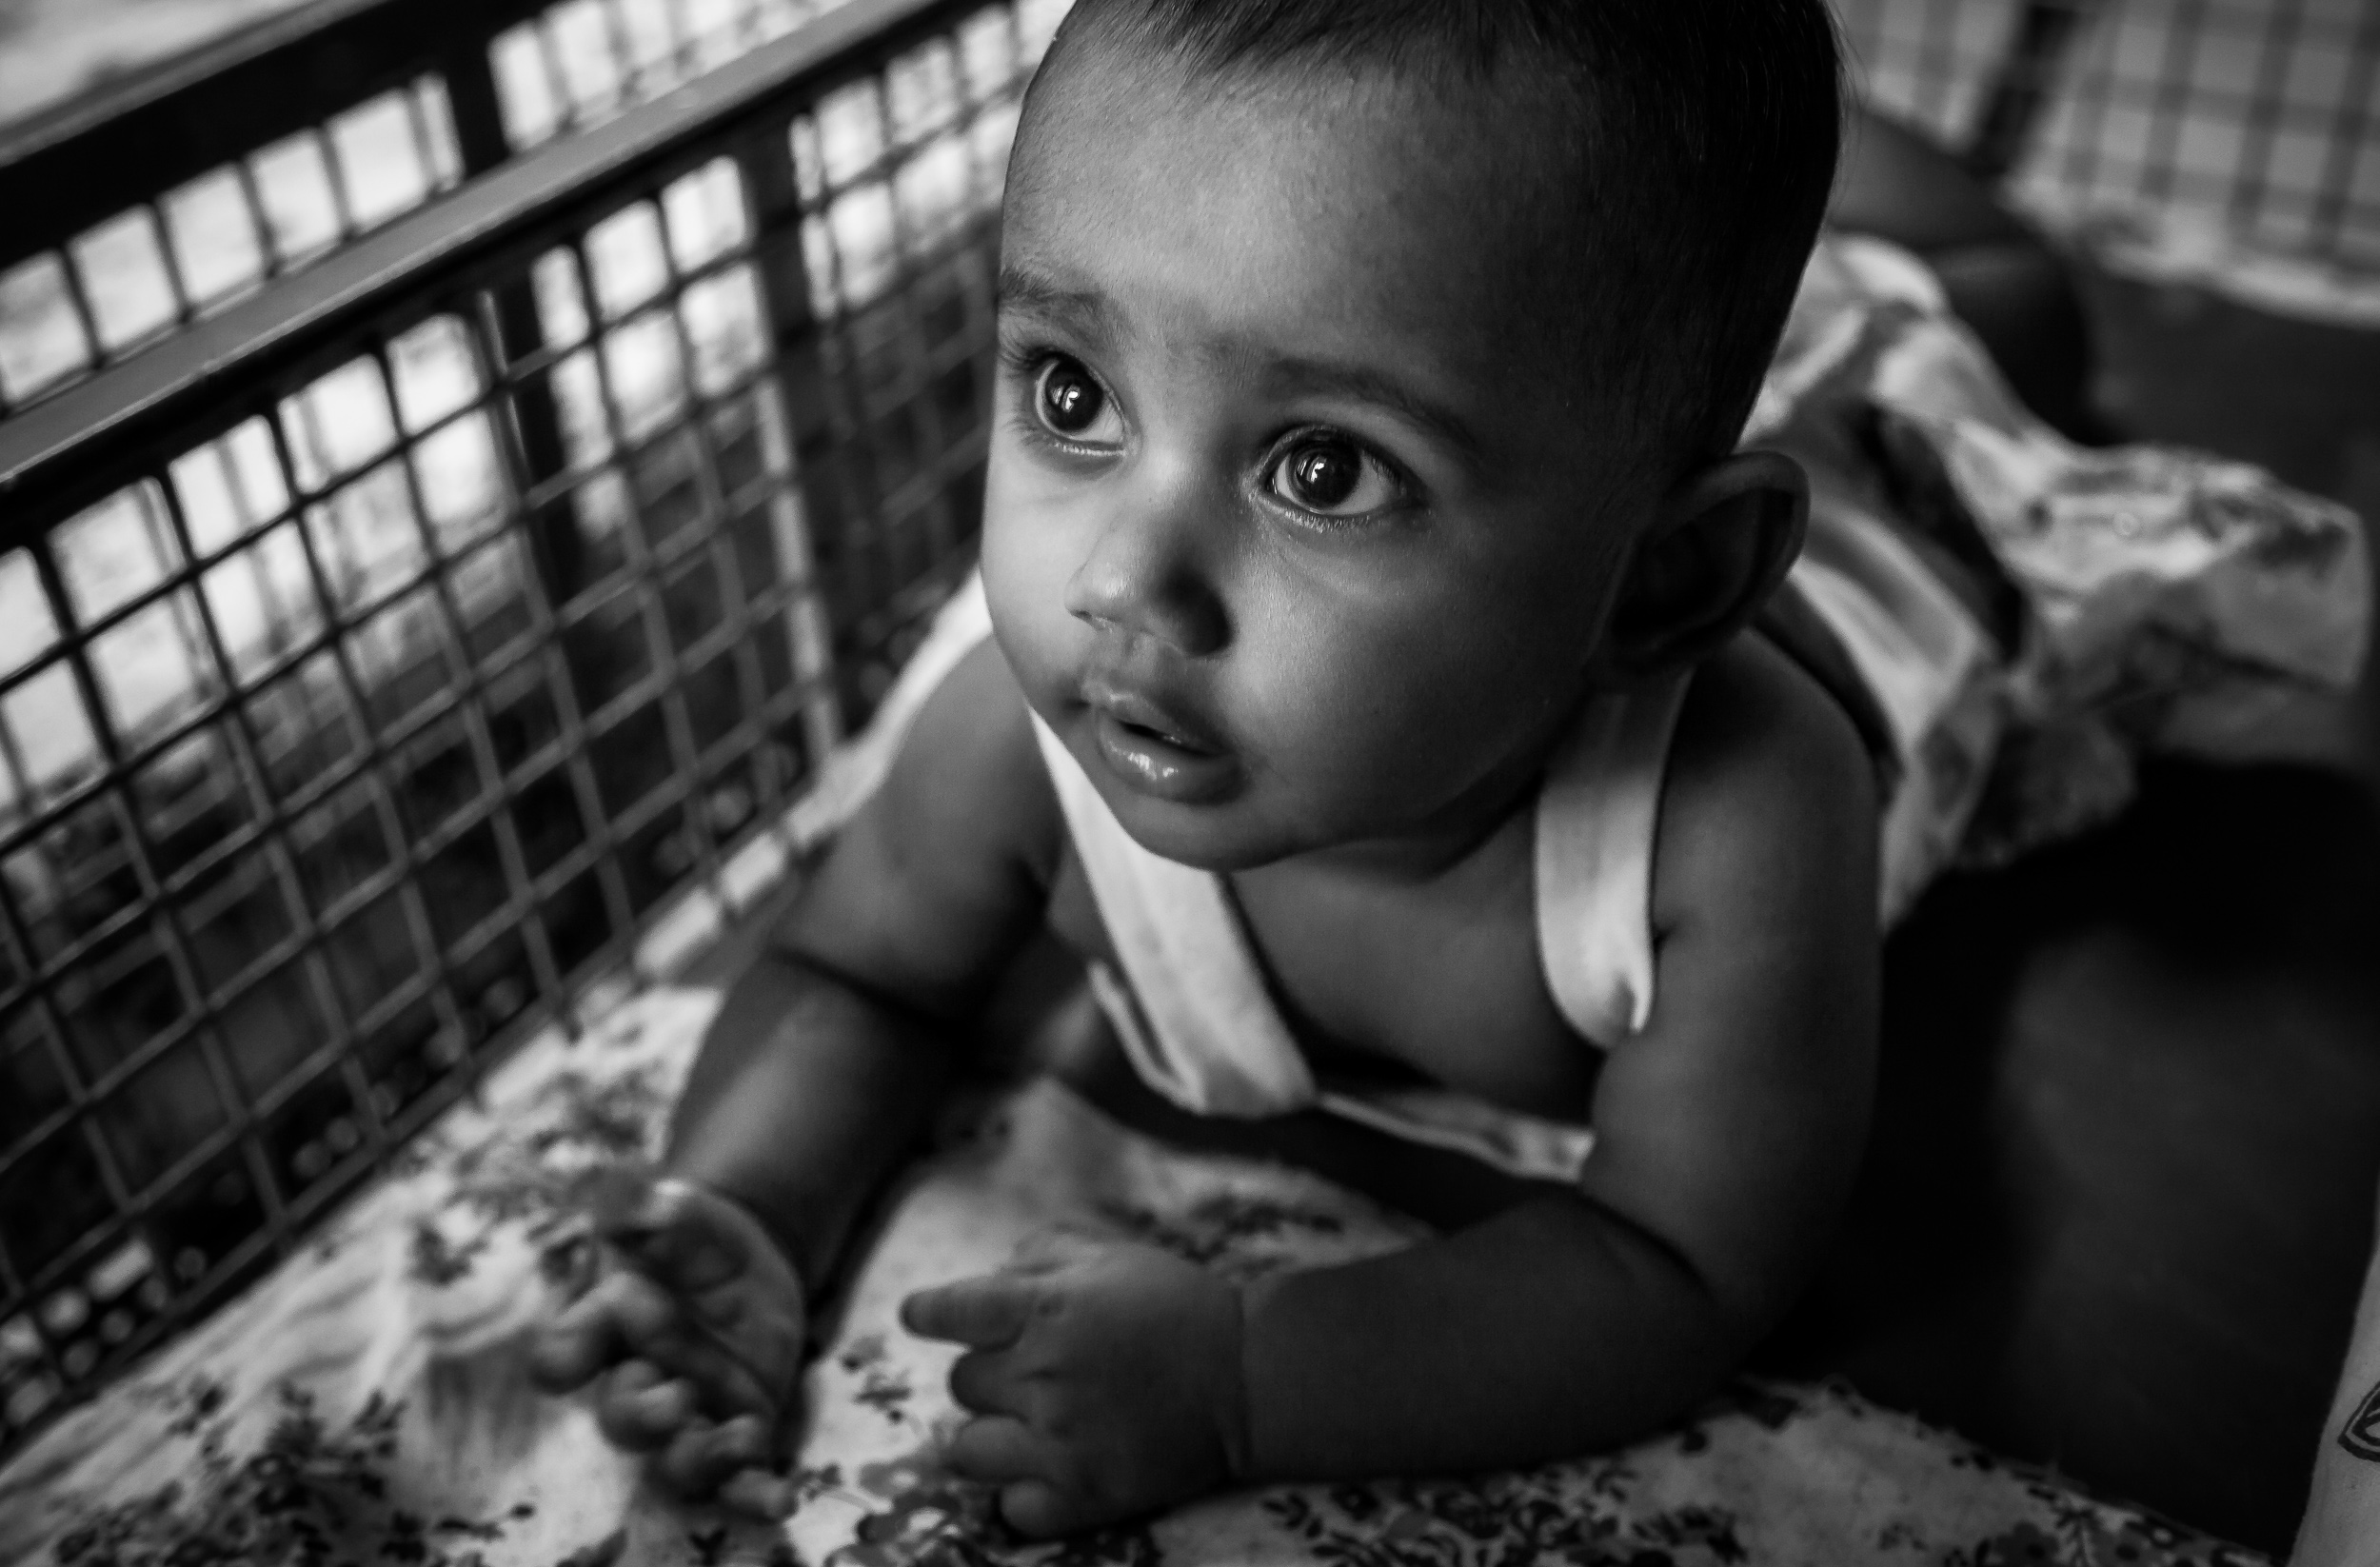 The    face of innocence    on a beautiful baby, just woken from sleep, in    Chennai, India   .